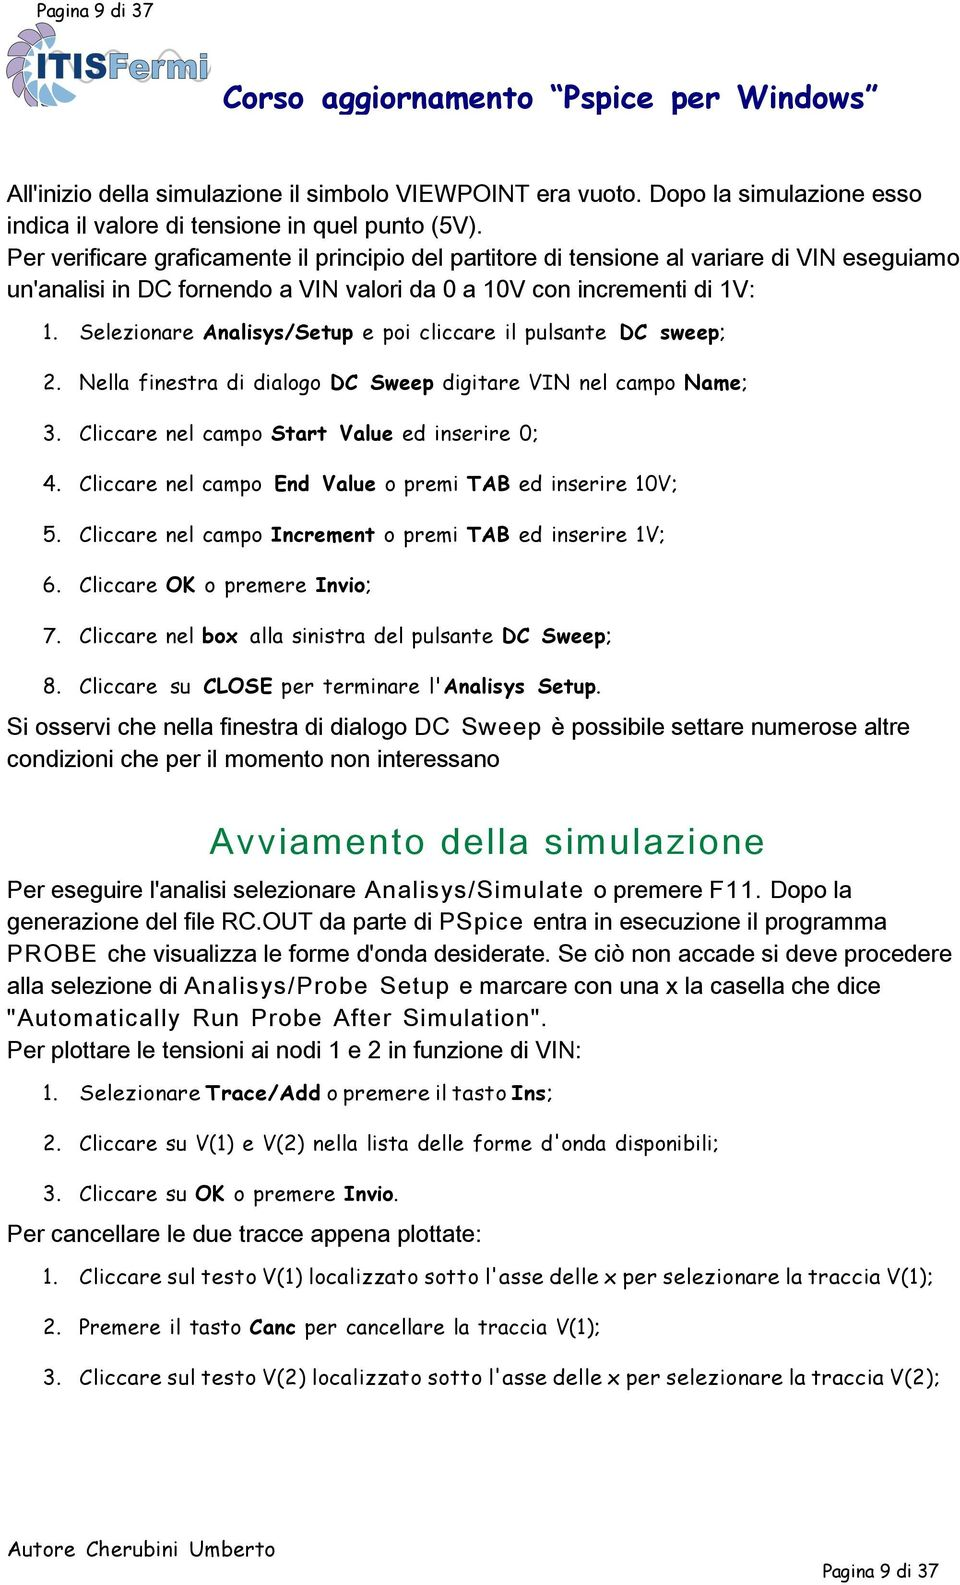 Selezionare Analisys/Setup e poi cliccare il pulsante DC sweep; 2. Nella finestra di dialogo DC Sweep digitare VIN nel campo Name; 3. Cliccare nel campo Start Value ed inserire 0; 4.